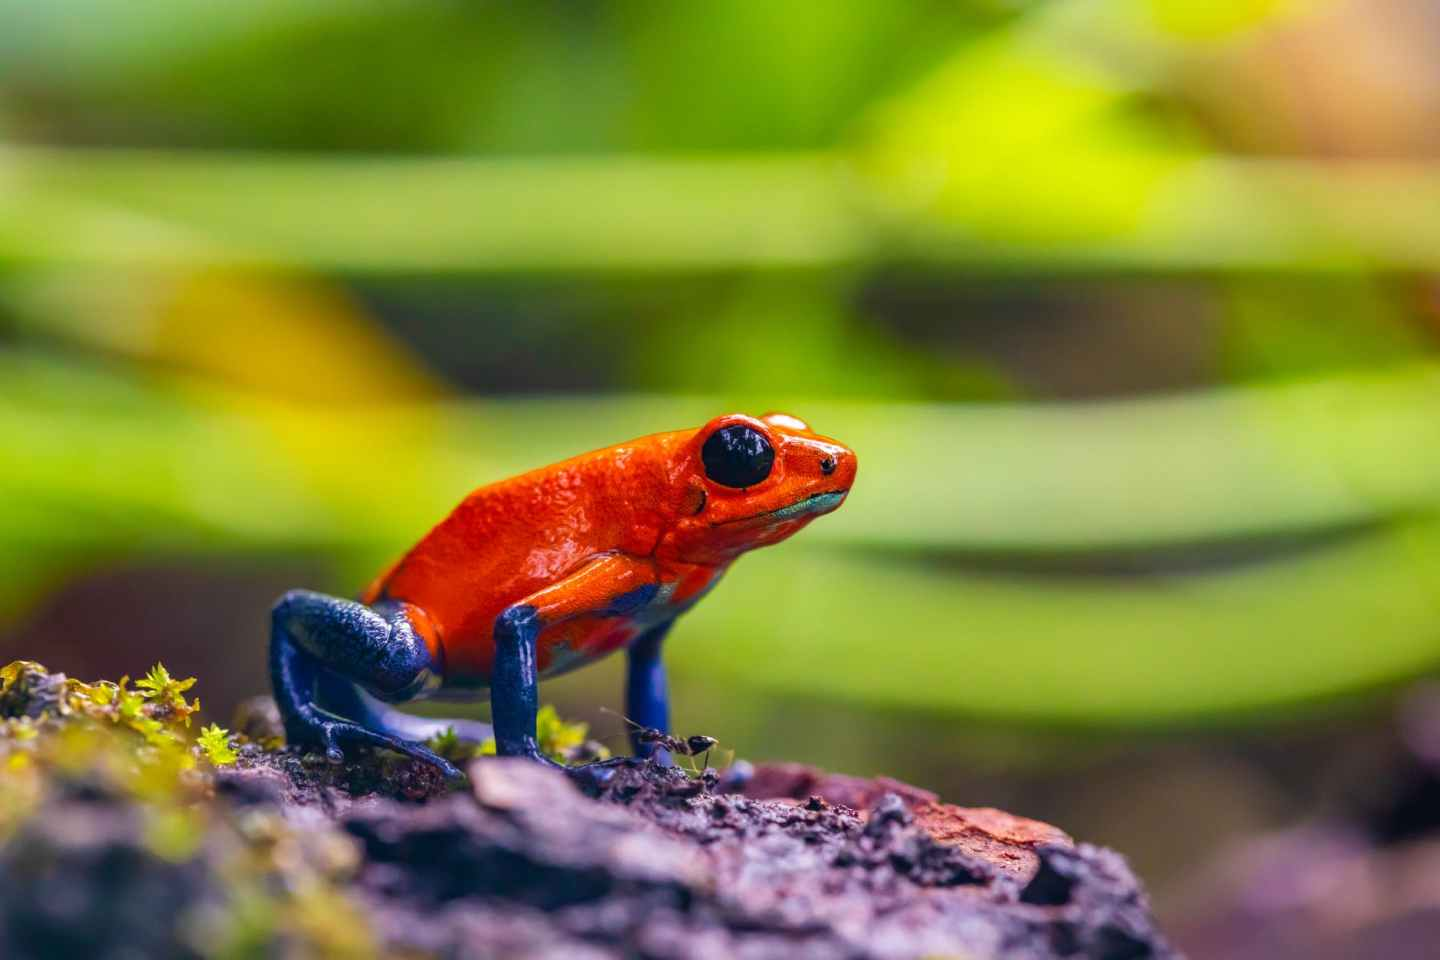 selective focus photo of red and blue frog on ground